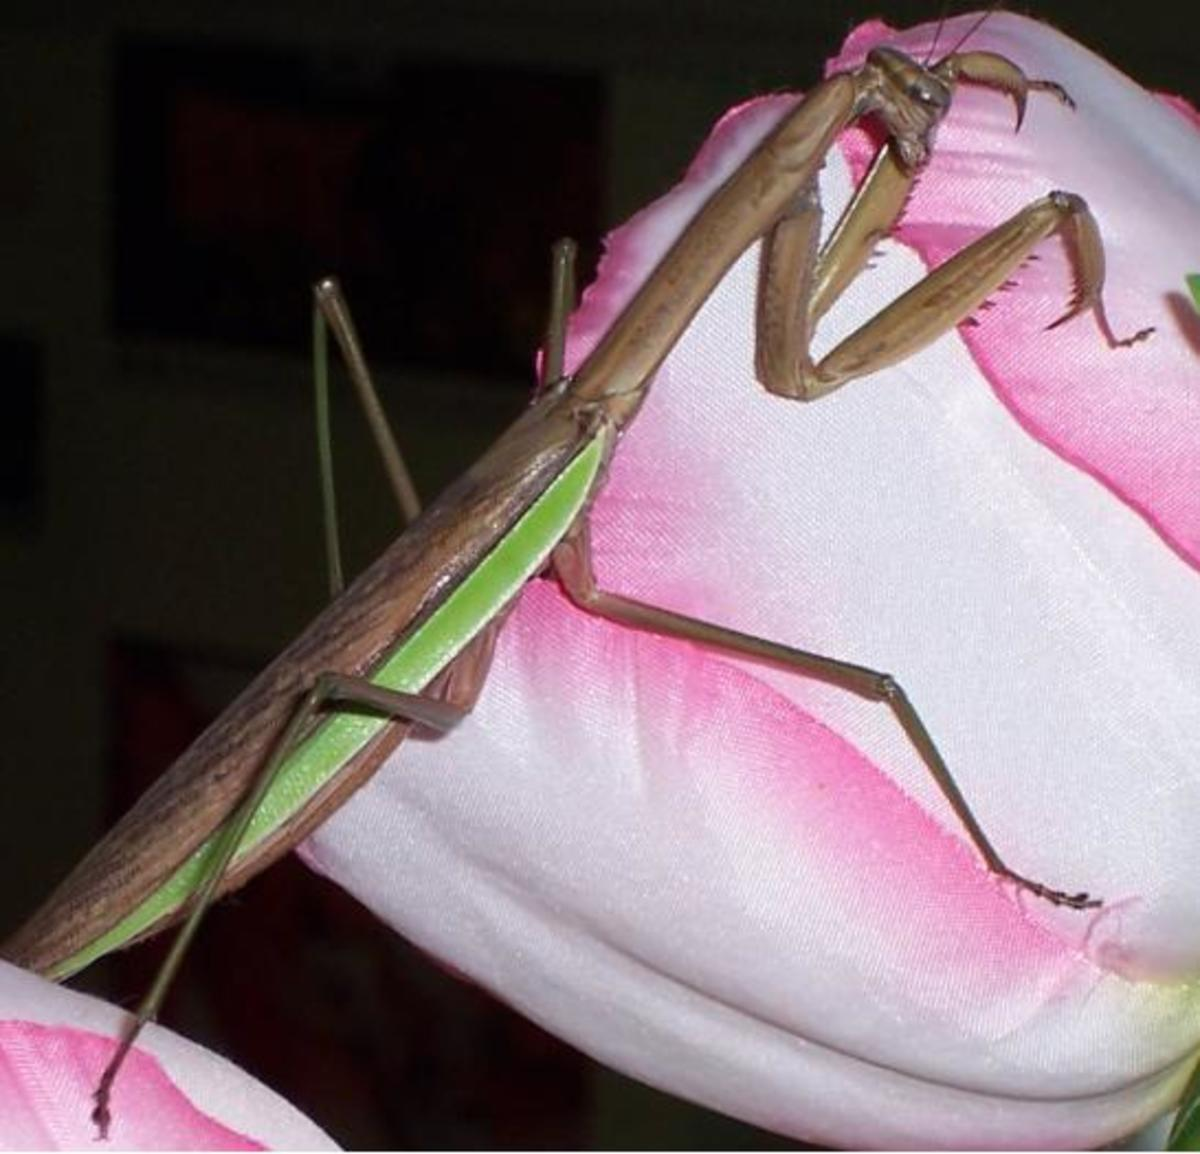 A Female Praying Mantis